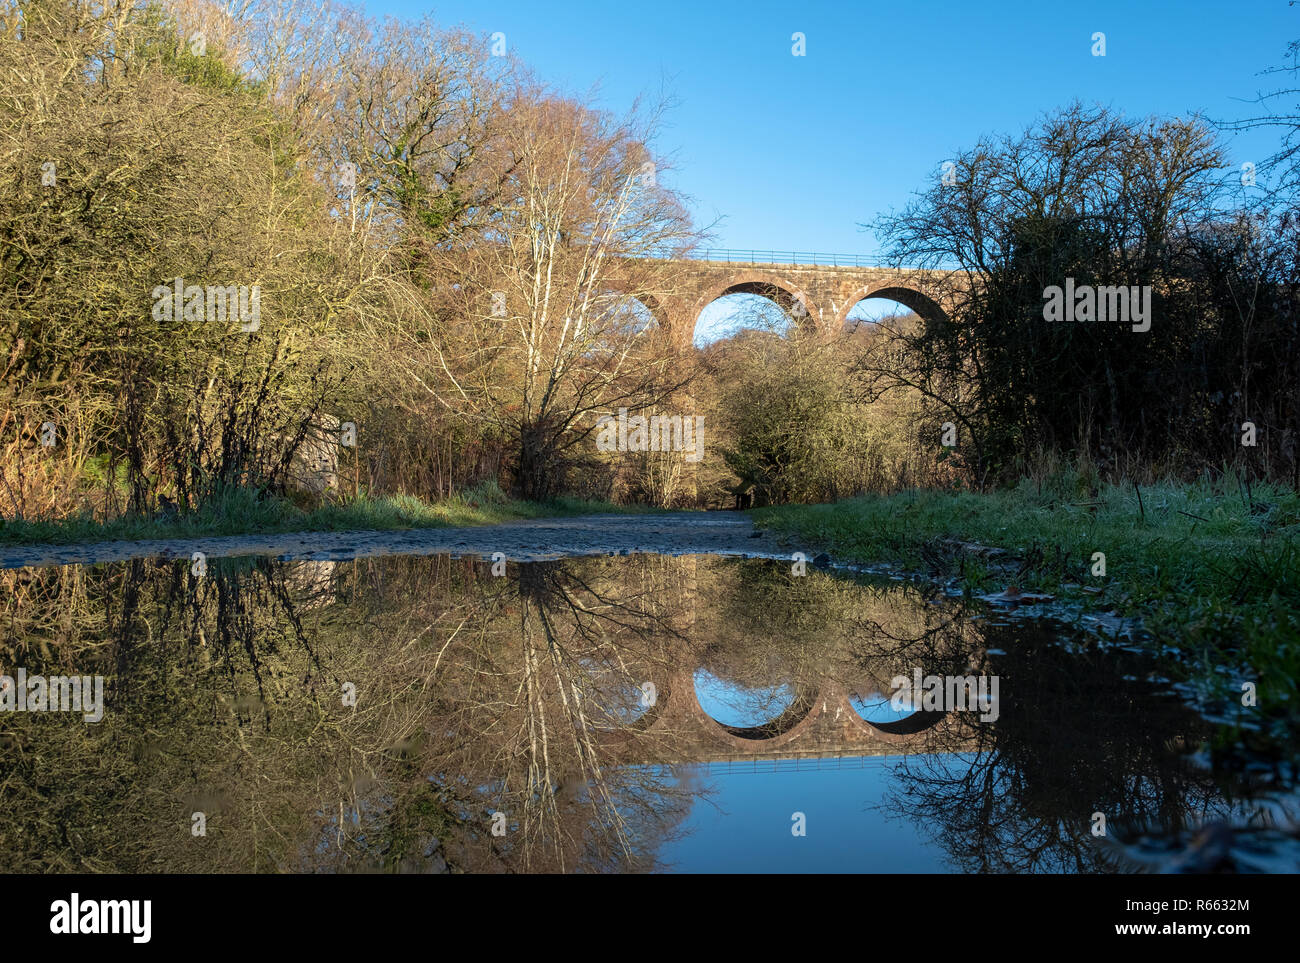 The Camps Railway viaduct, Almondell and Calderwood country park, West Lothian. - Stock Image